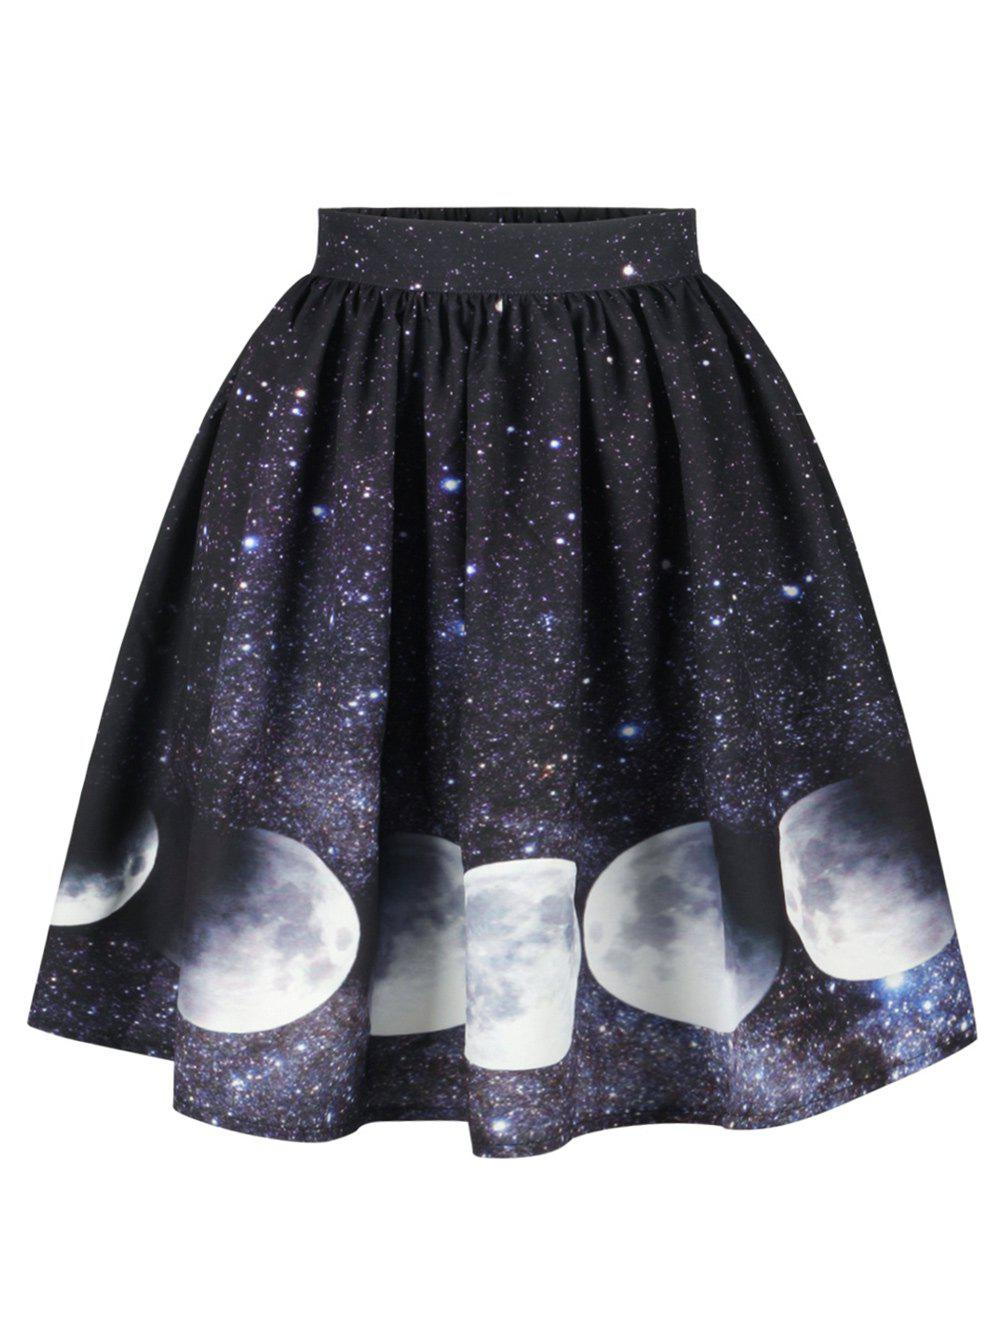 Shop Galaxy Moon Starry Sky Print Skirt